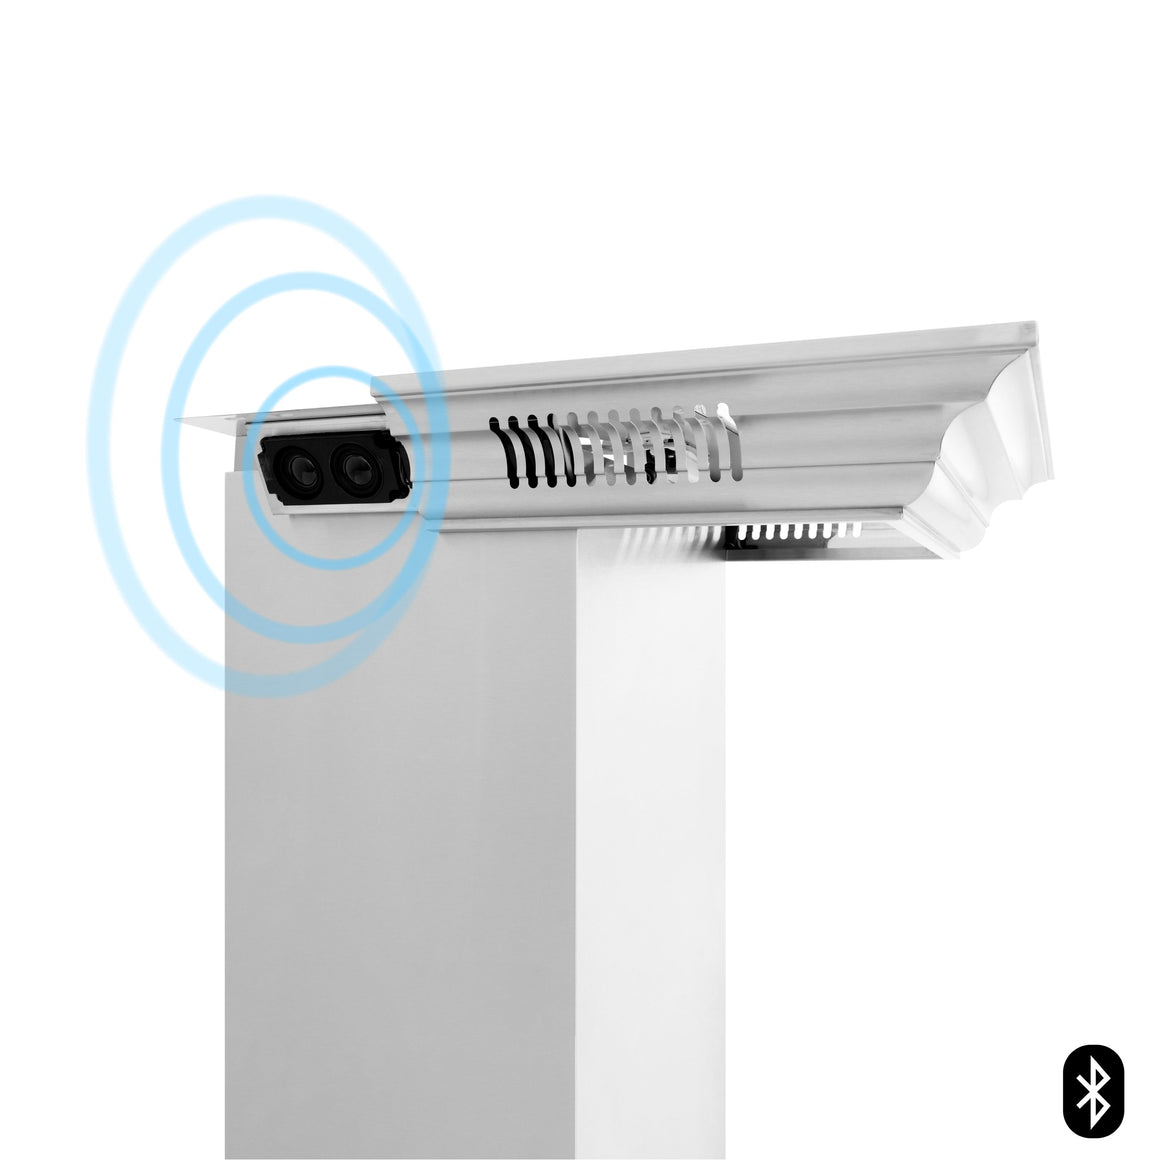 ZLINE Crown Molding With Built-In CrownSound® Bluetooth Speakers (CM6-BT-697)